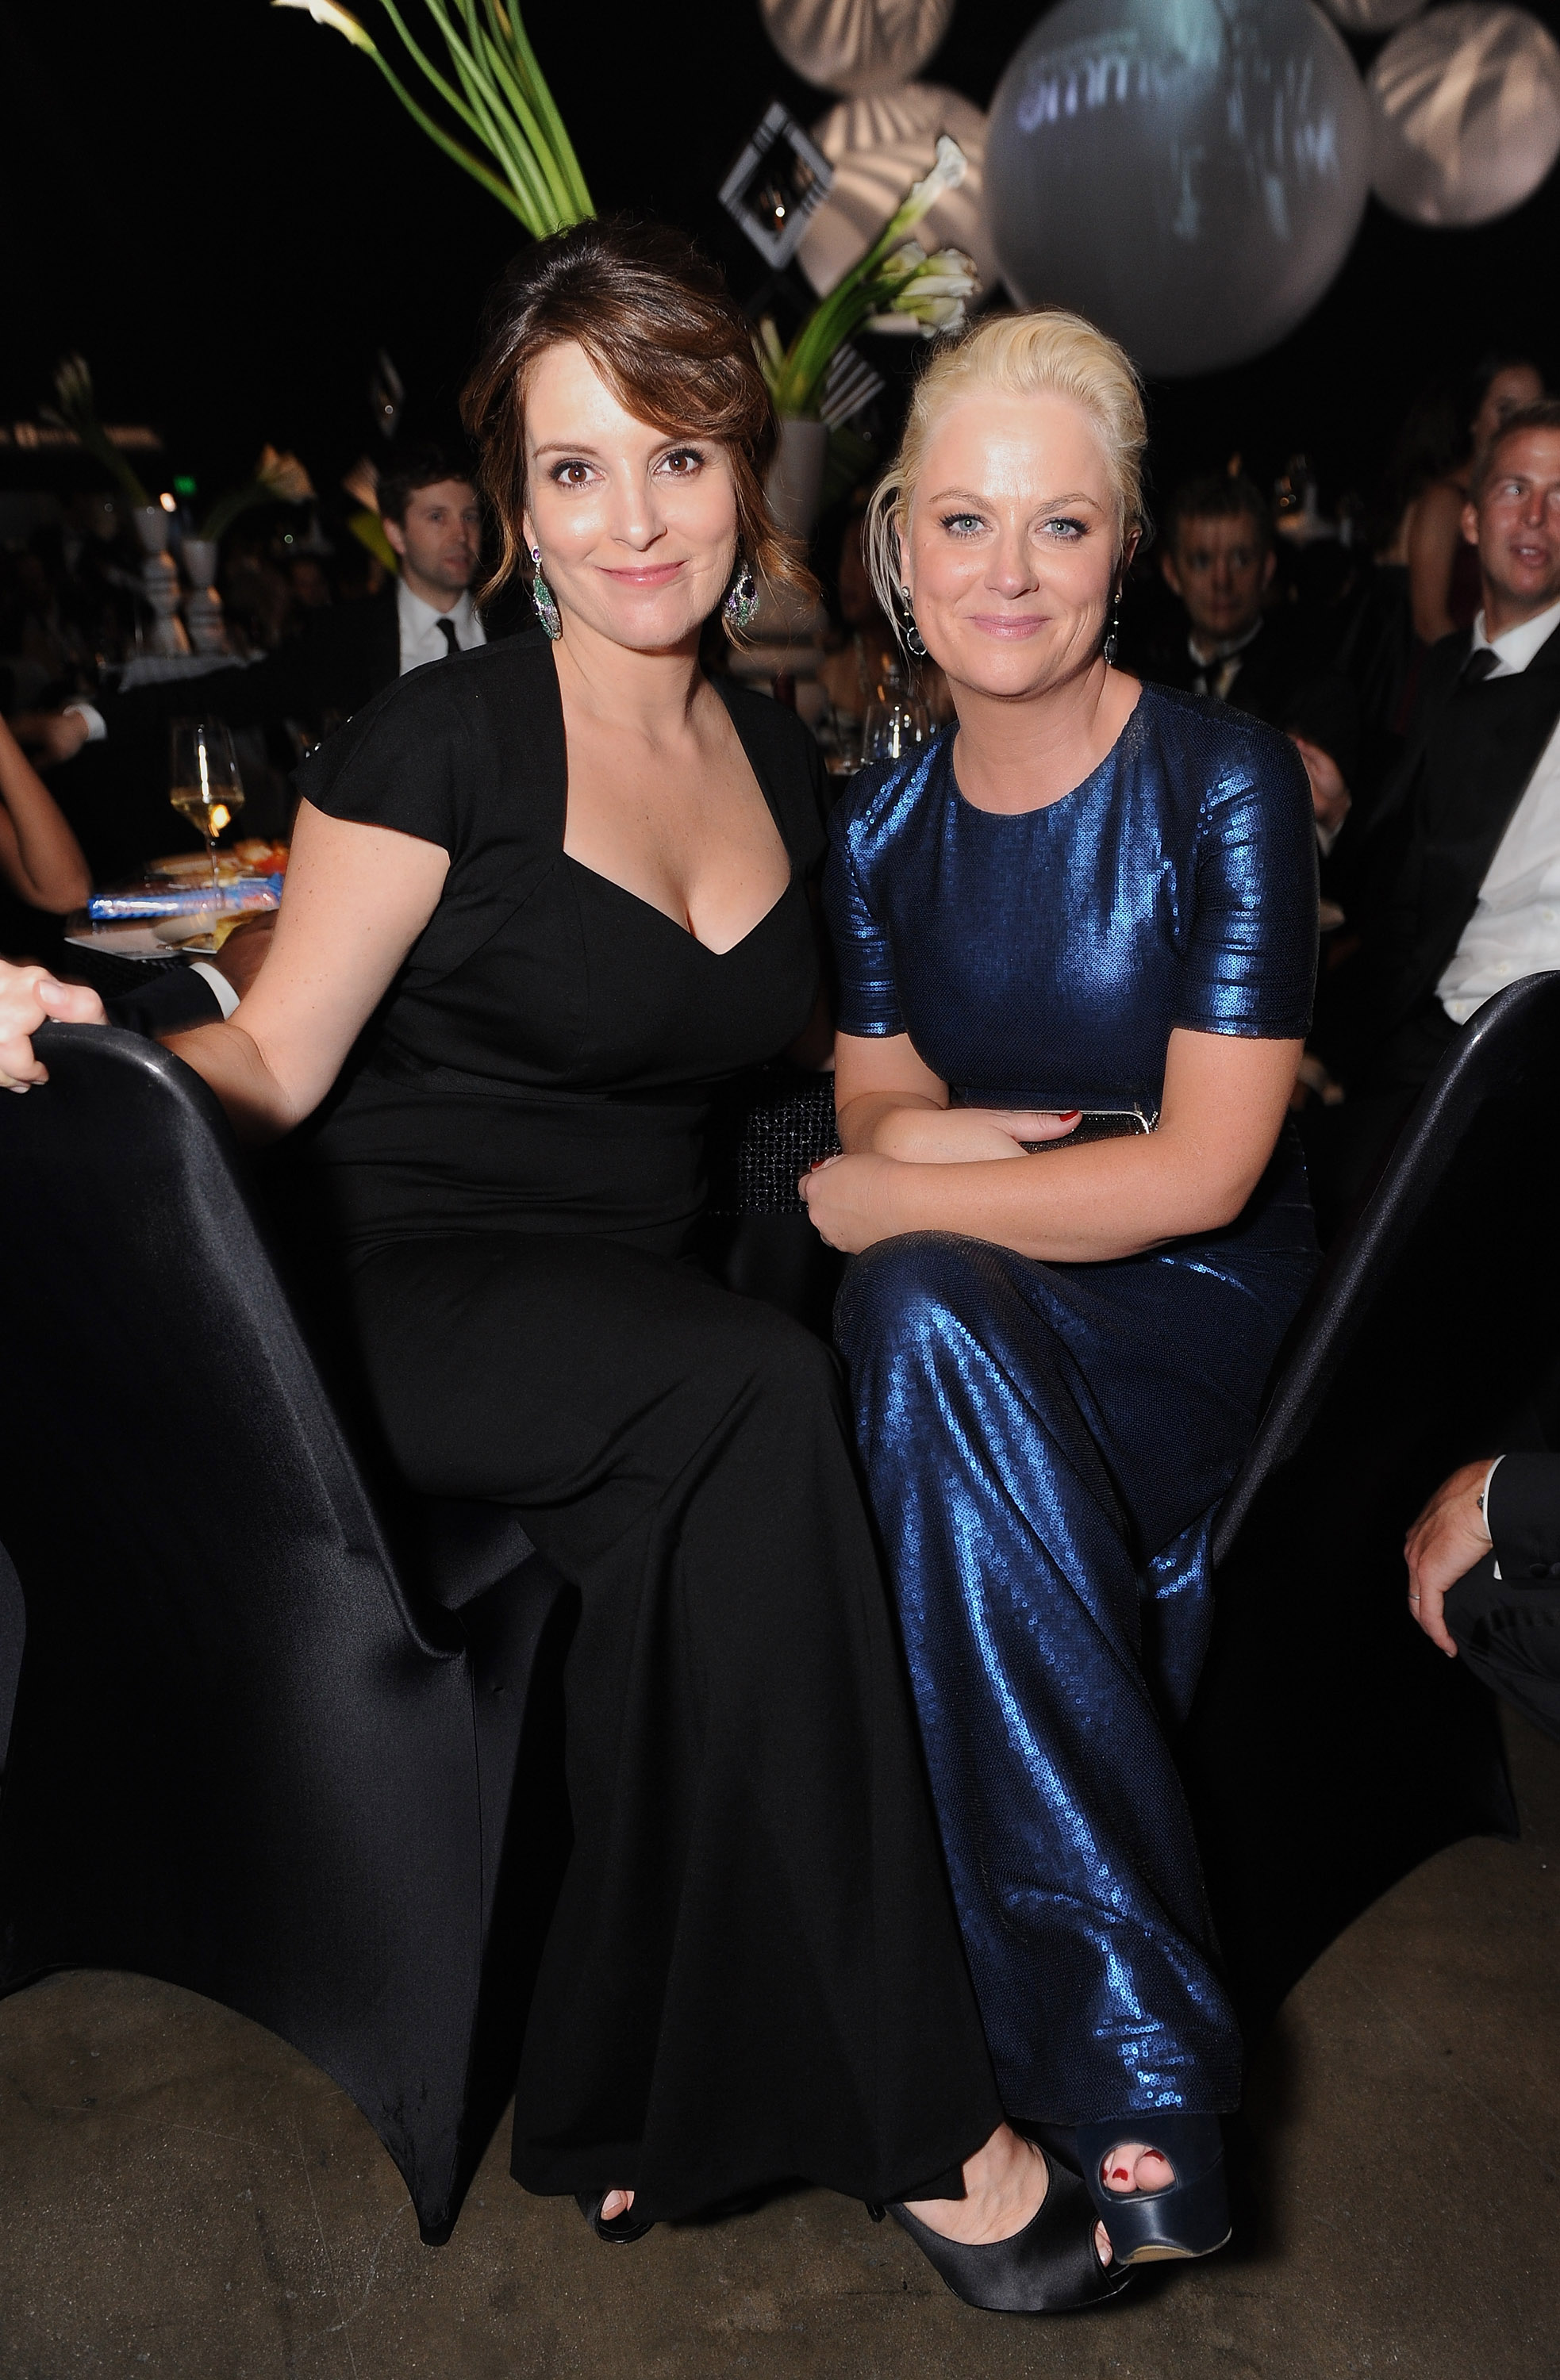 Funny ladies Tina Fey and Amy Poehler hang out.